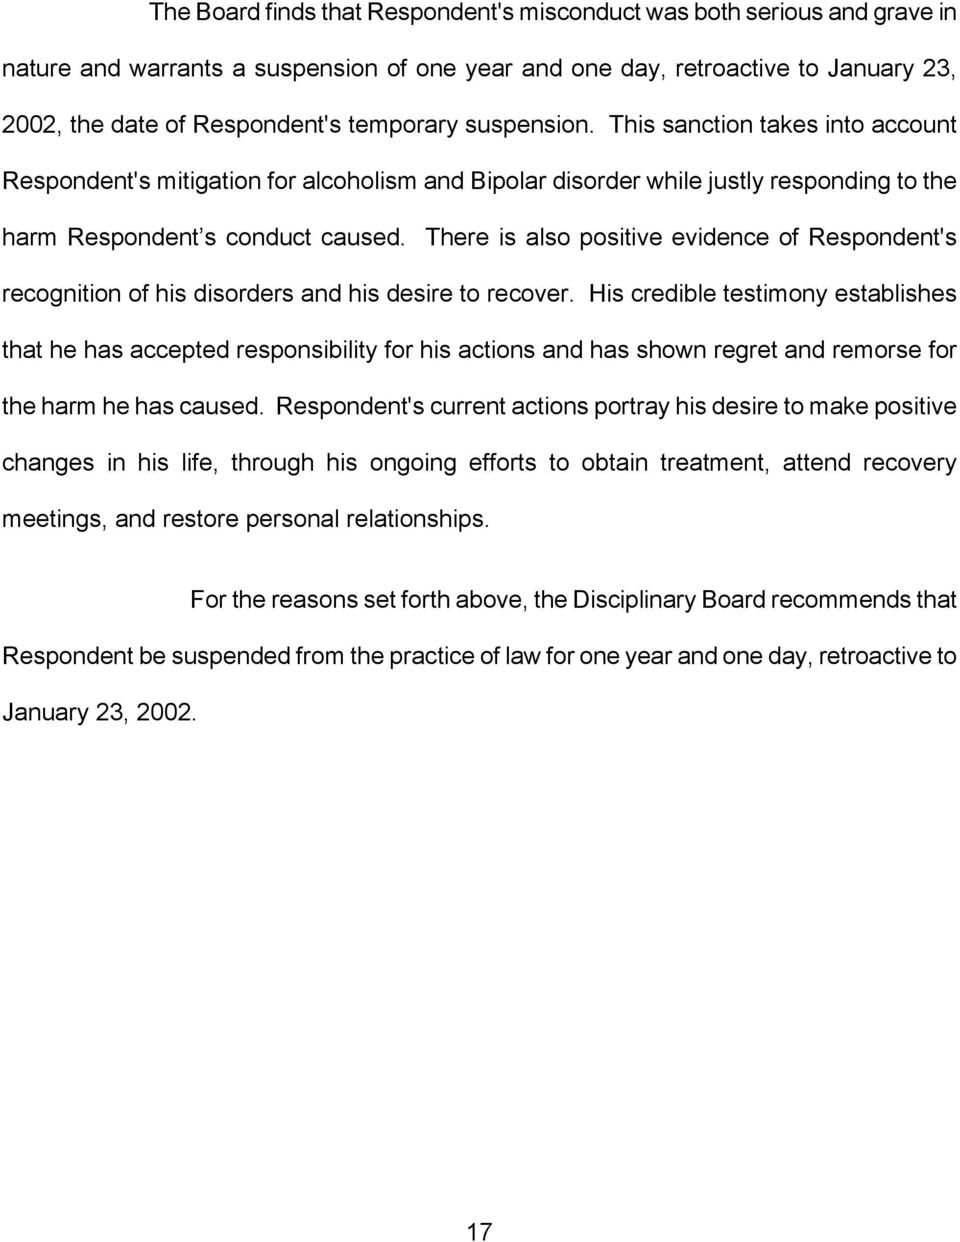 There is also positive evidence of Respondent's recognition of his disorders and his desire to recover.